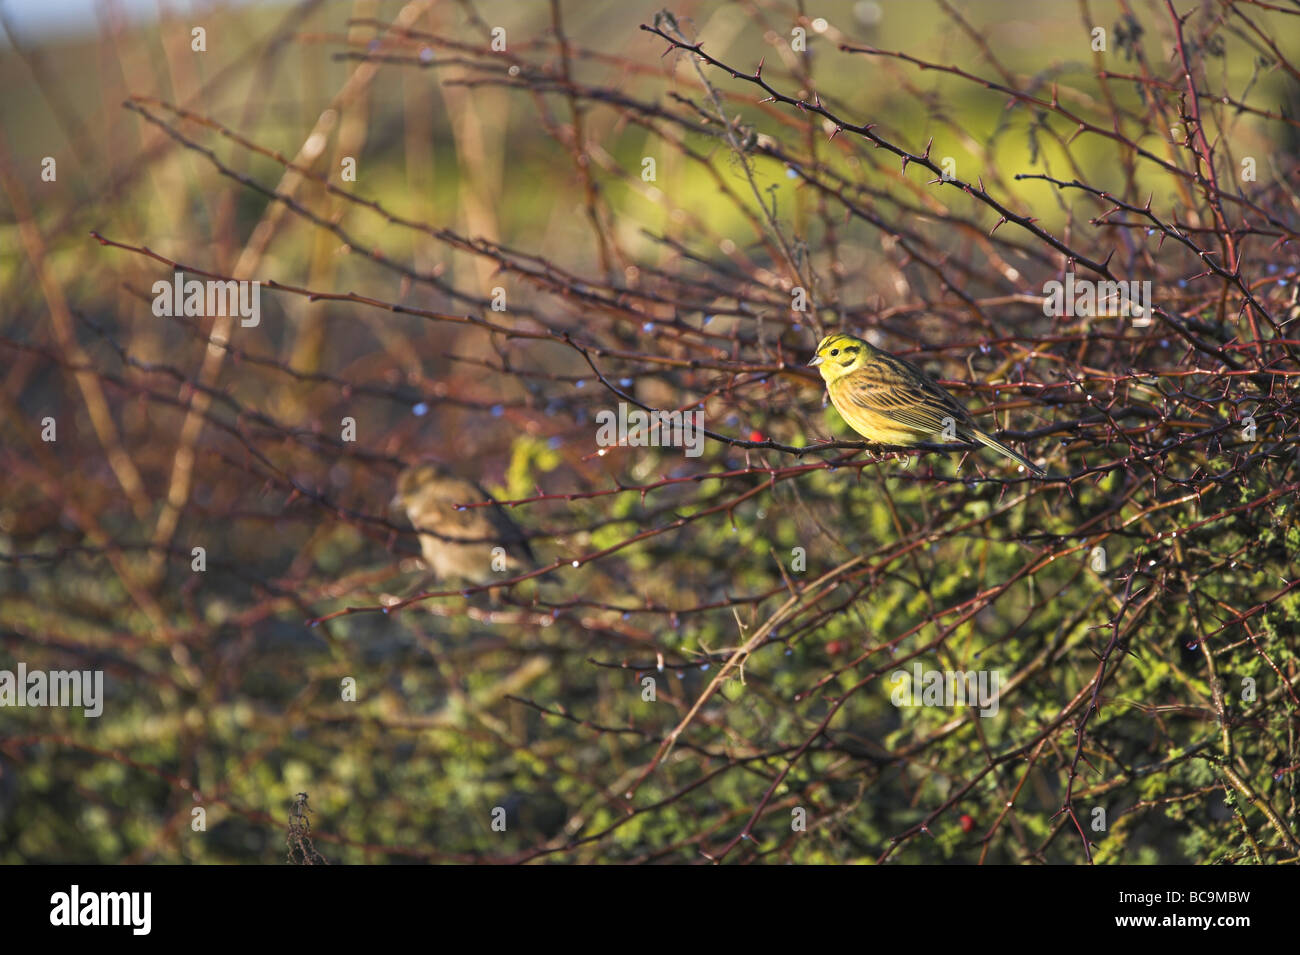 Yellowhammer Emberiza citrinella perched in bare bushes at Caerlaverock, Dumfries & Galloway in December. - Stock Image